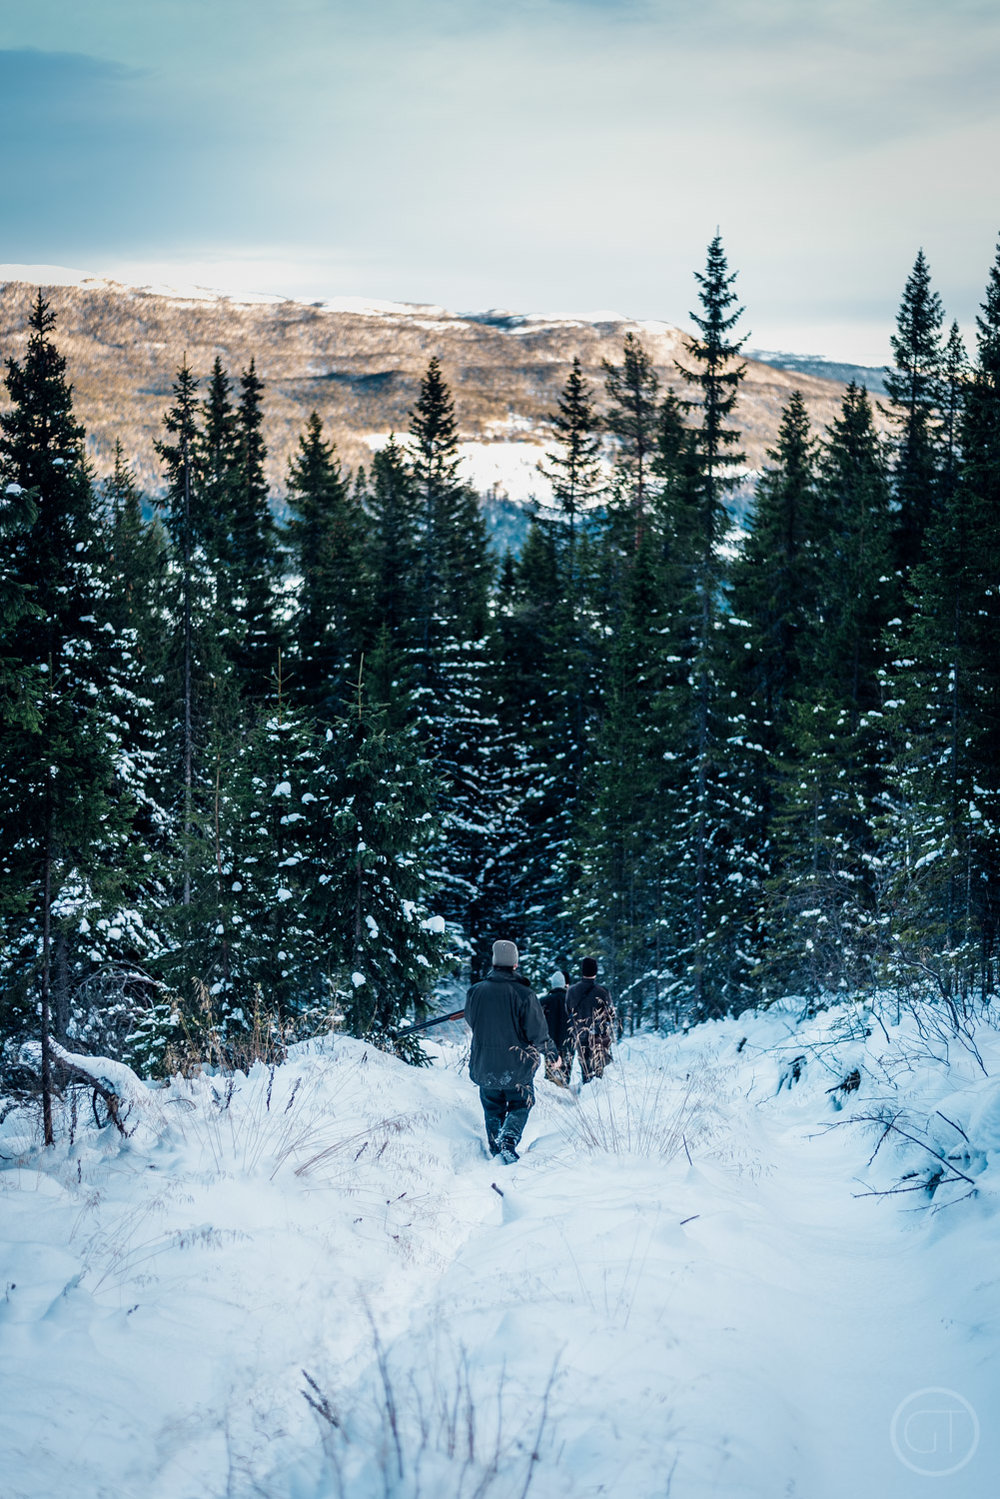 GUSTAV_THUESEN_HUNTING_NORWAY_OUTDOOR_LIFESTYLE_PHOTOGRAPHER_PROFESSIONAL-20.jpg